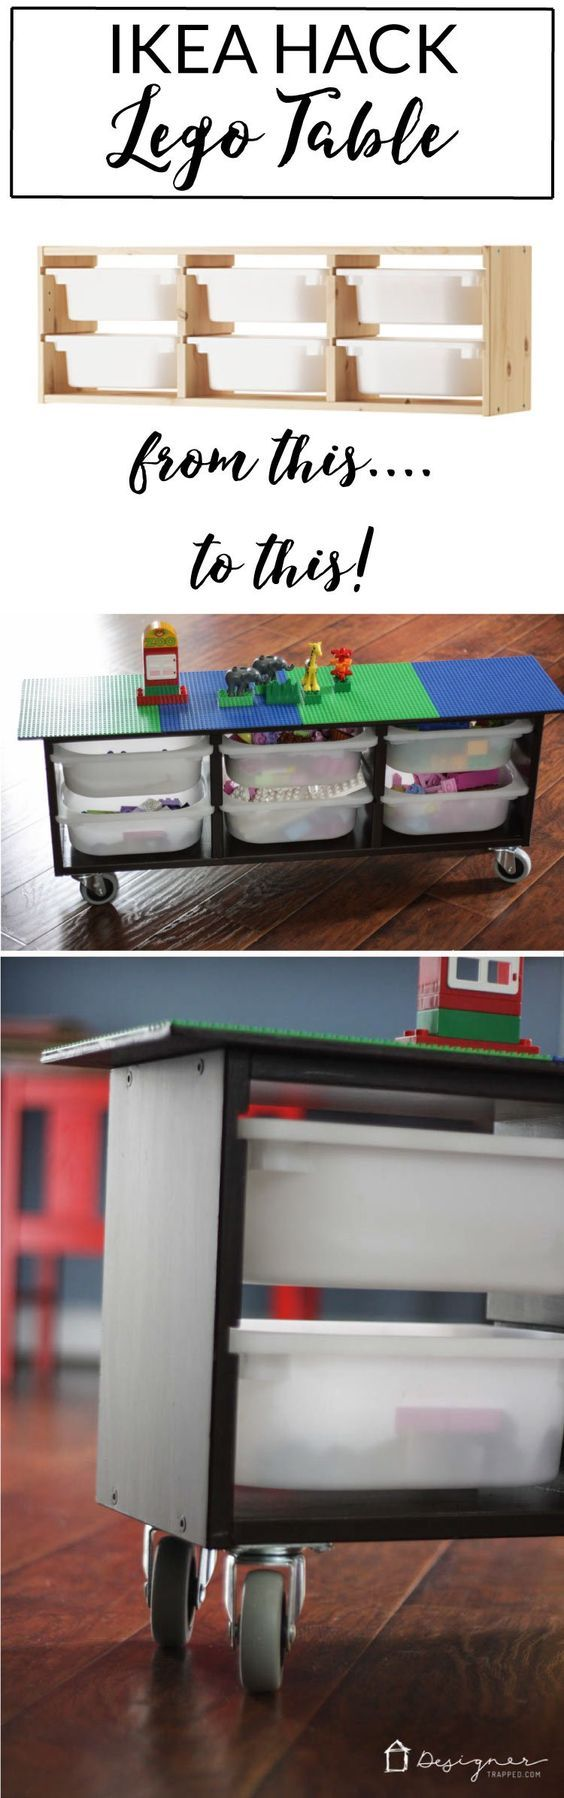 Awesome Ikea Hack! Make your own DIY lego table with this simple Ikea Hack. Perfect lego storage for your kids! Full tutorial from Designer Trapped in a Lawyer's Body.